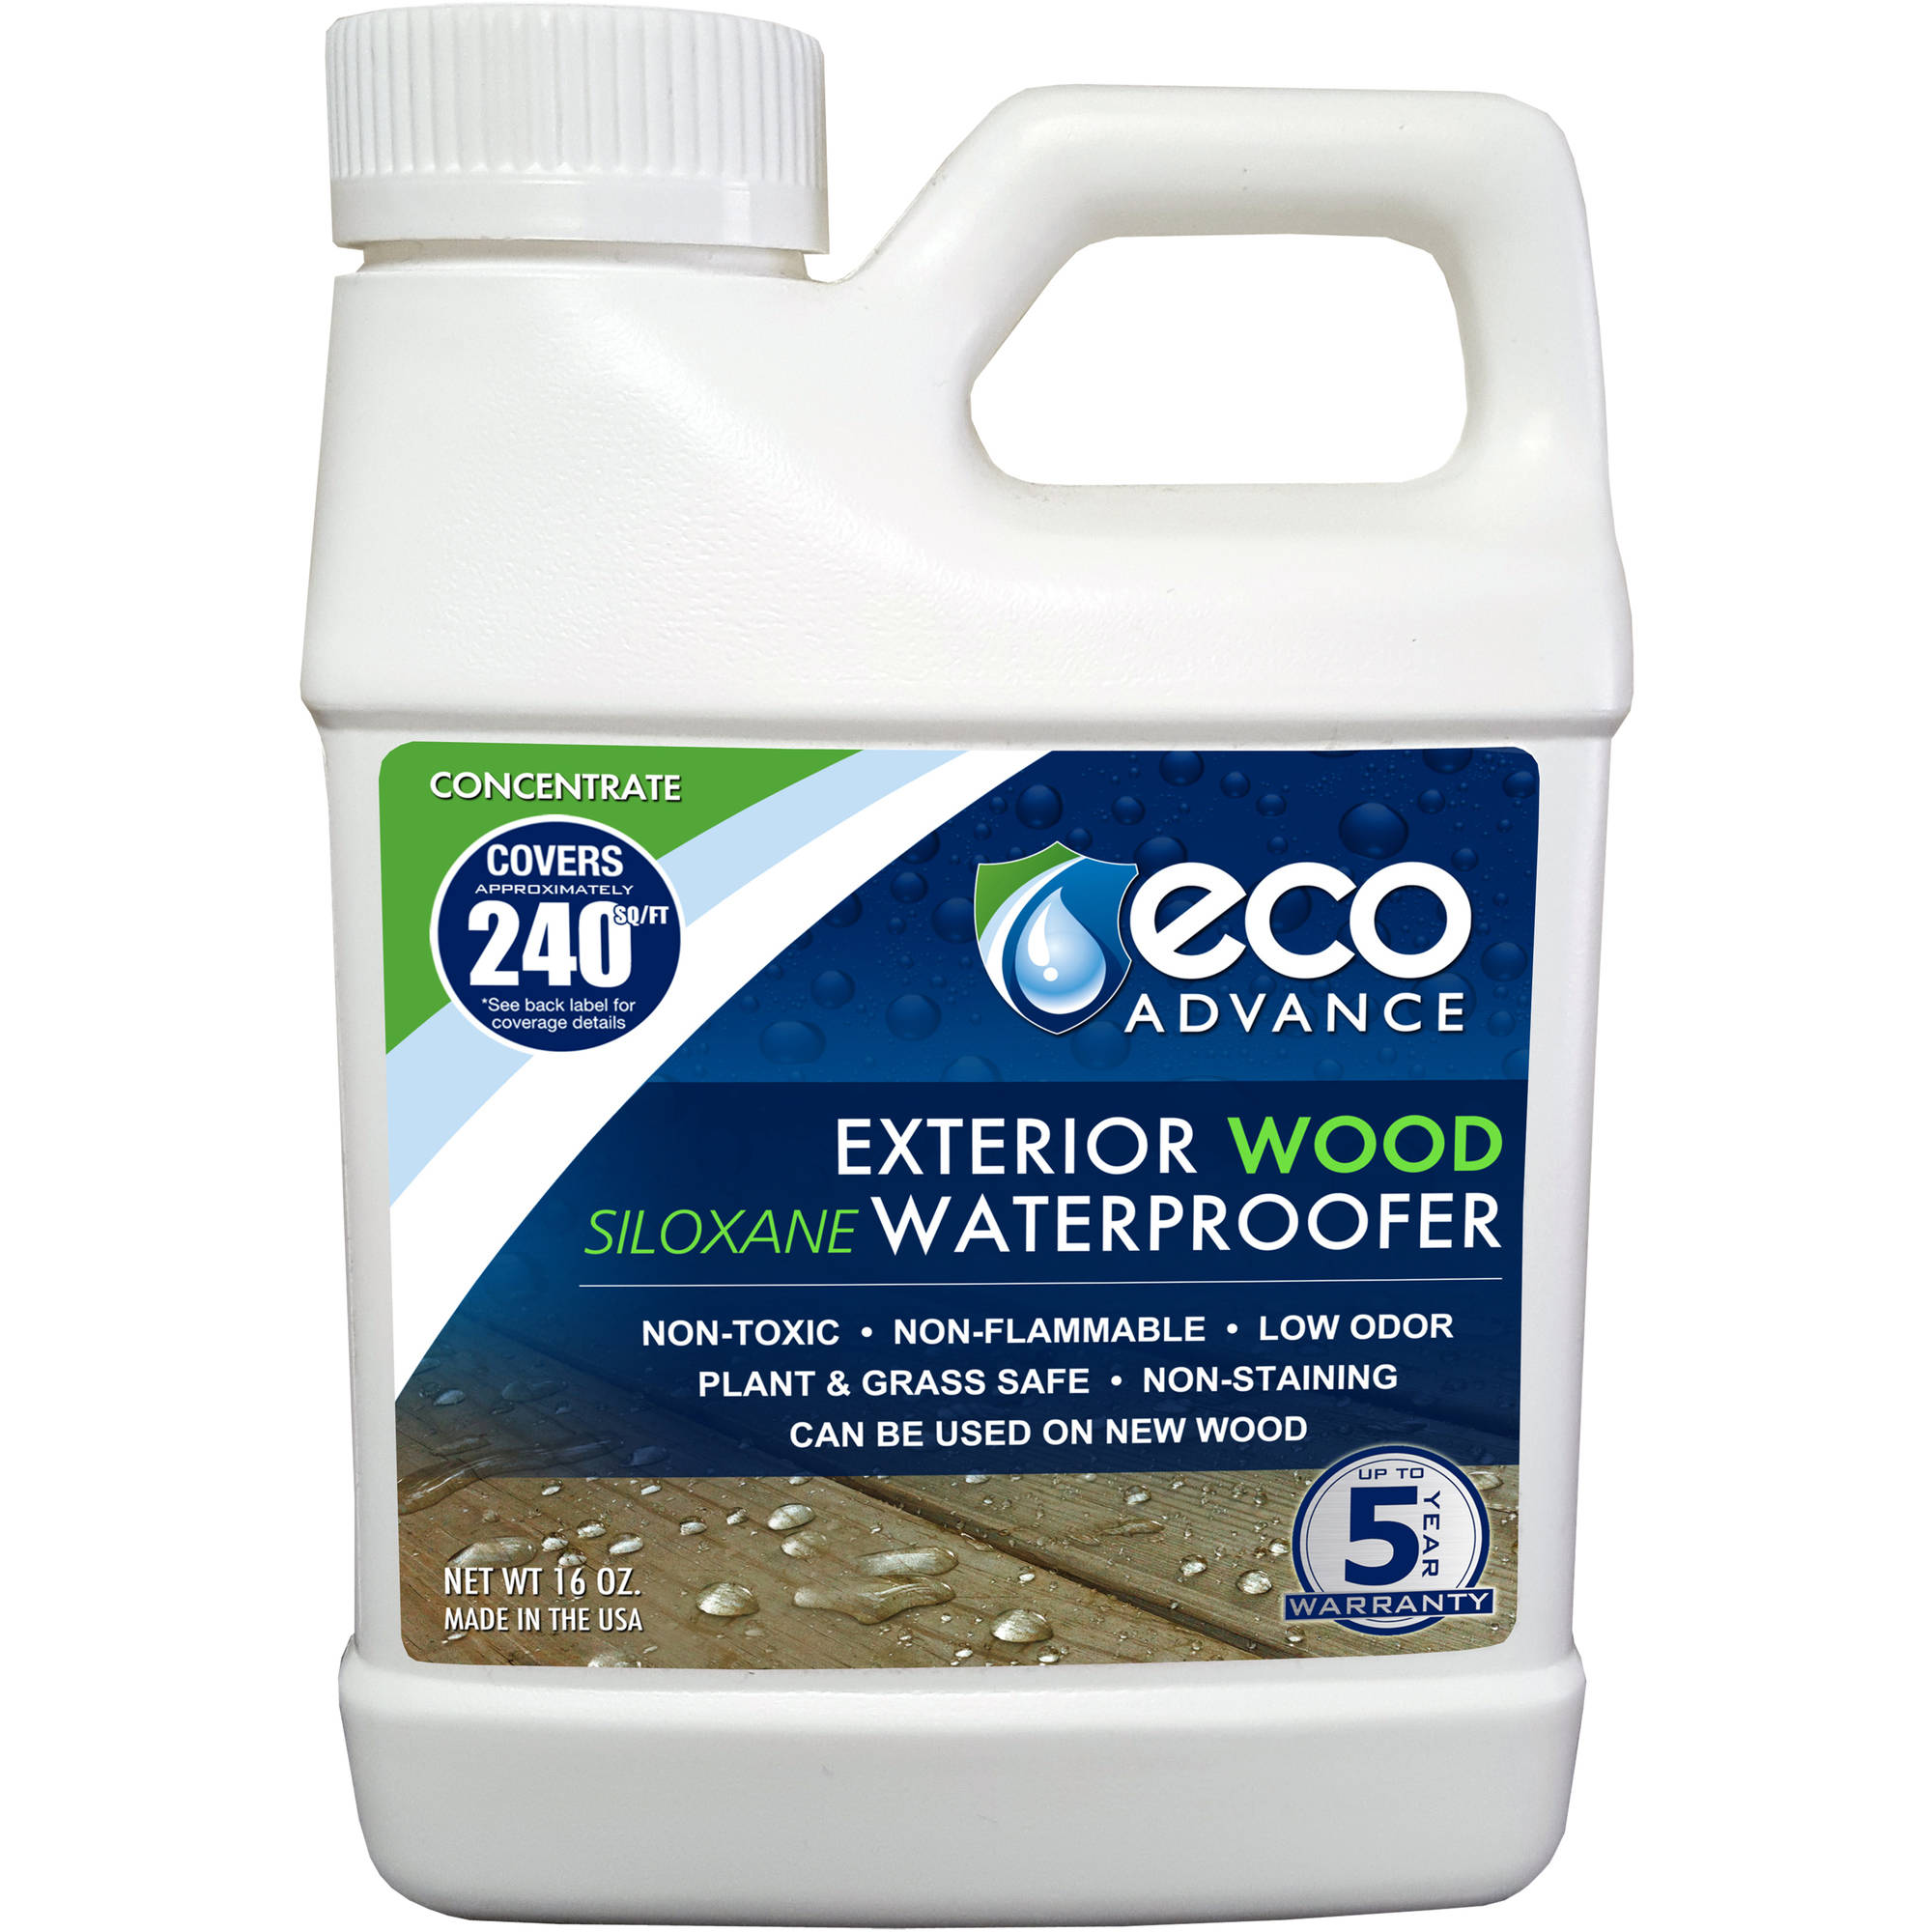 Eco Advance Wood Siloxane Waterproofer, Liquid Concentrate, 16 oz